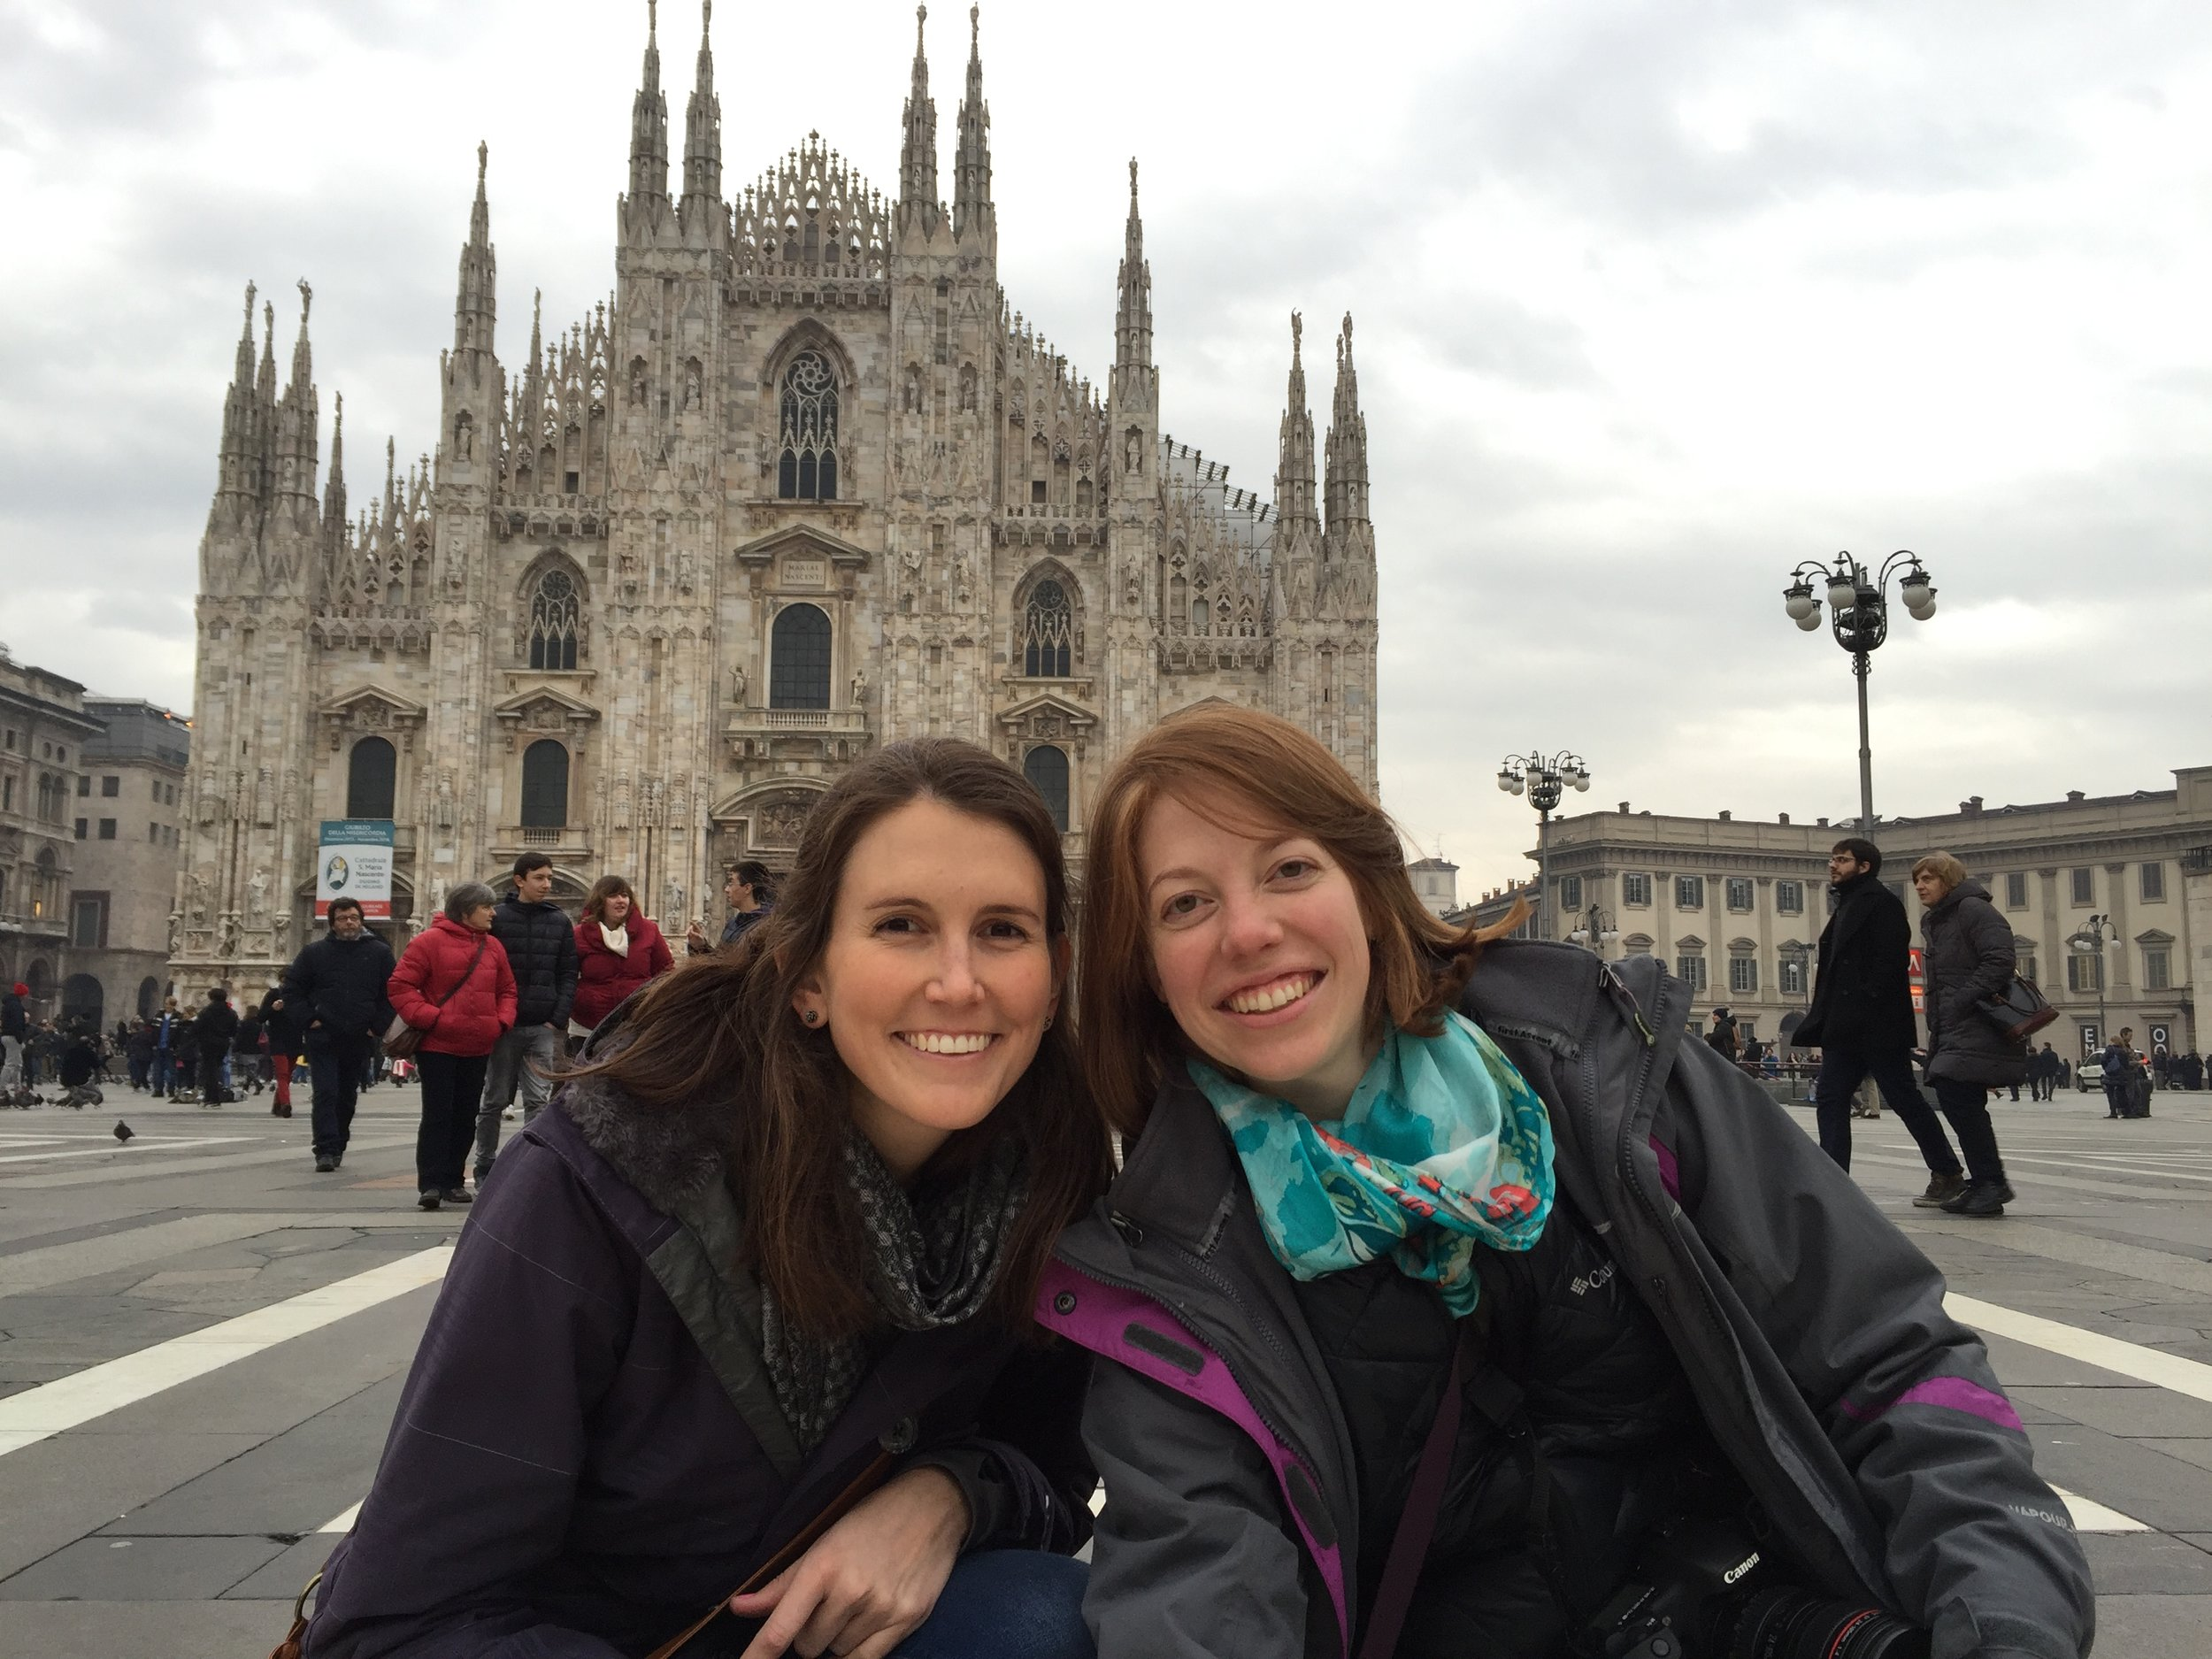 In front of the Duomo, Milan